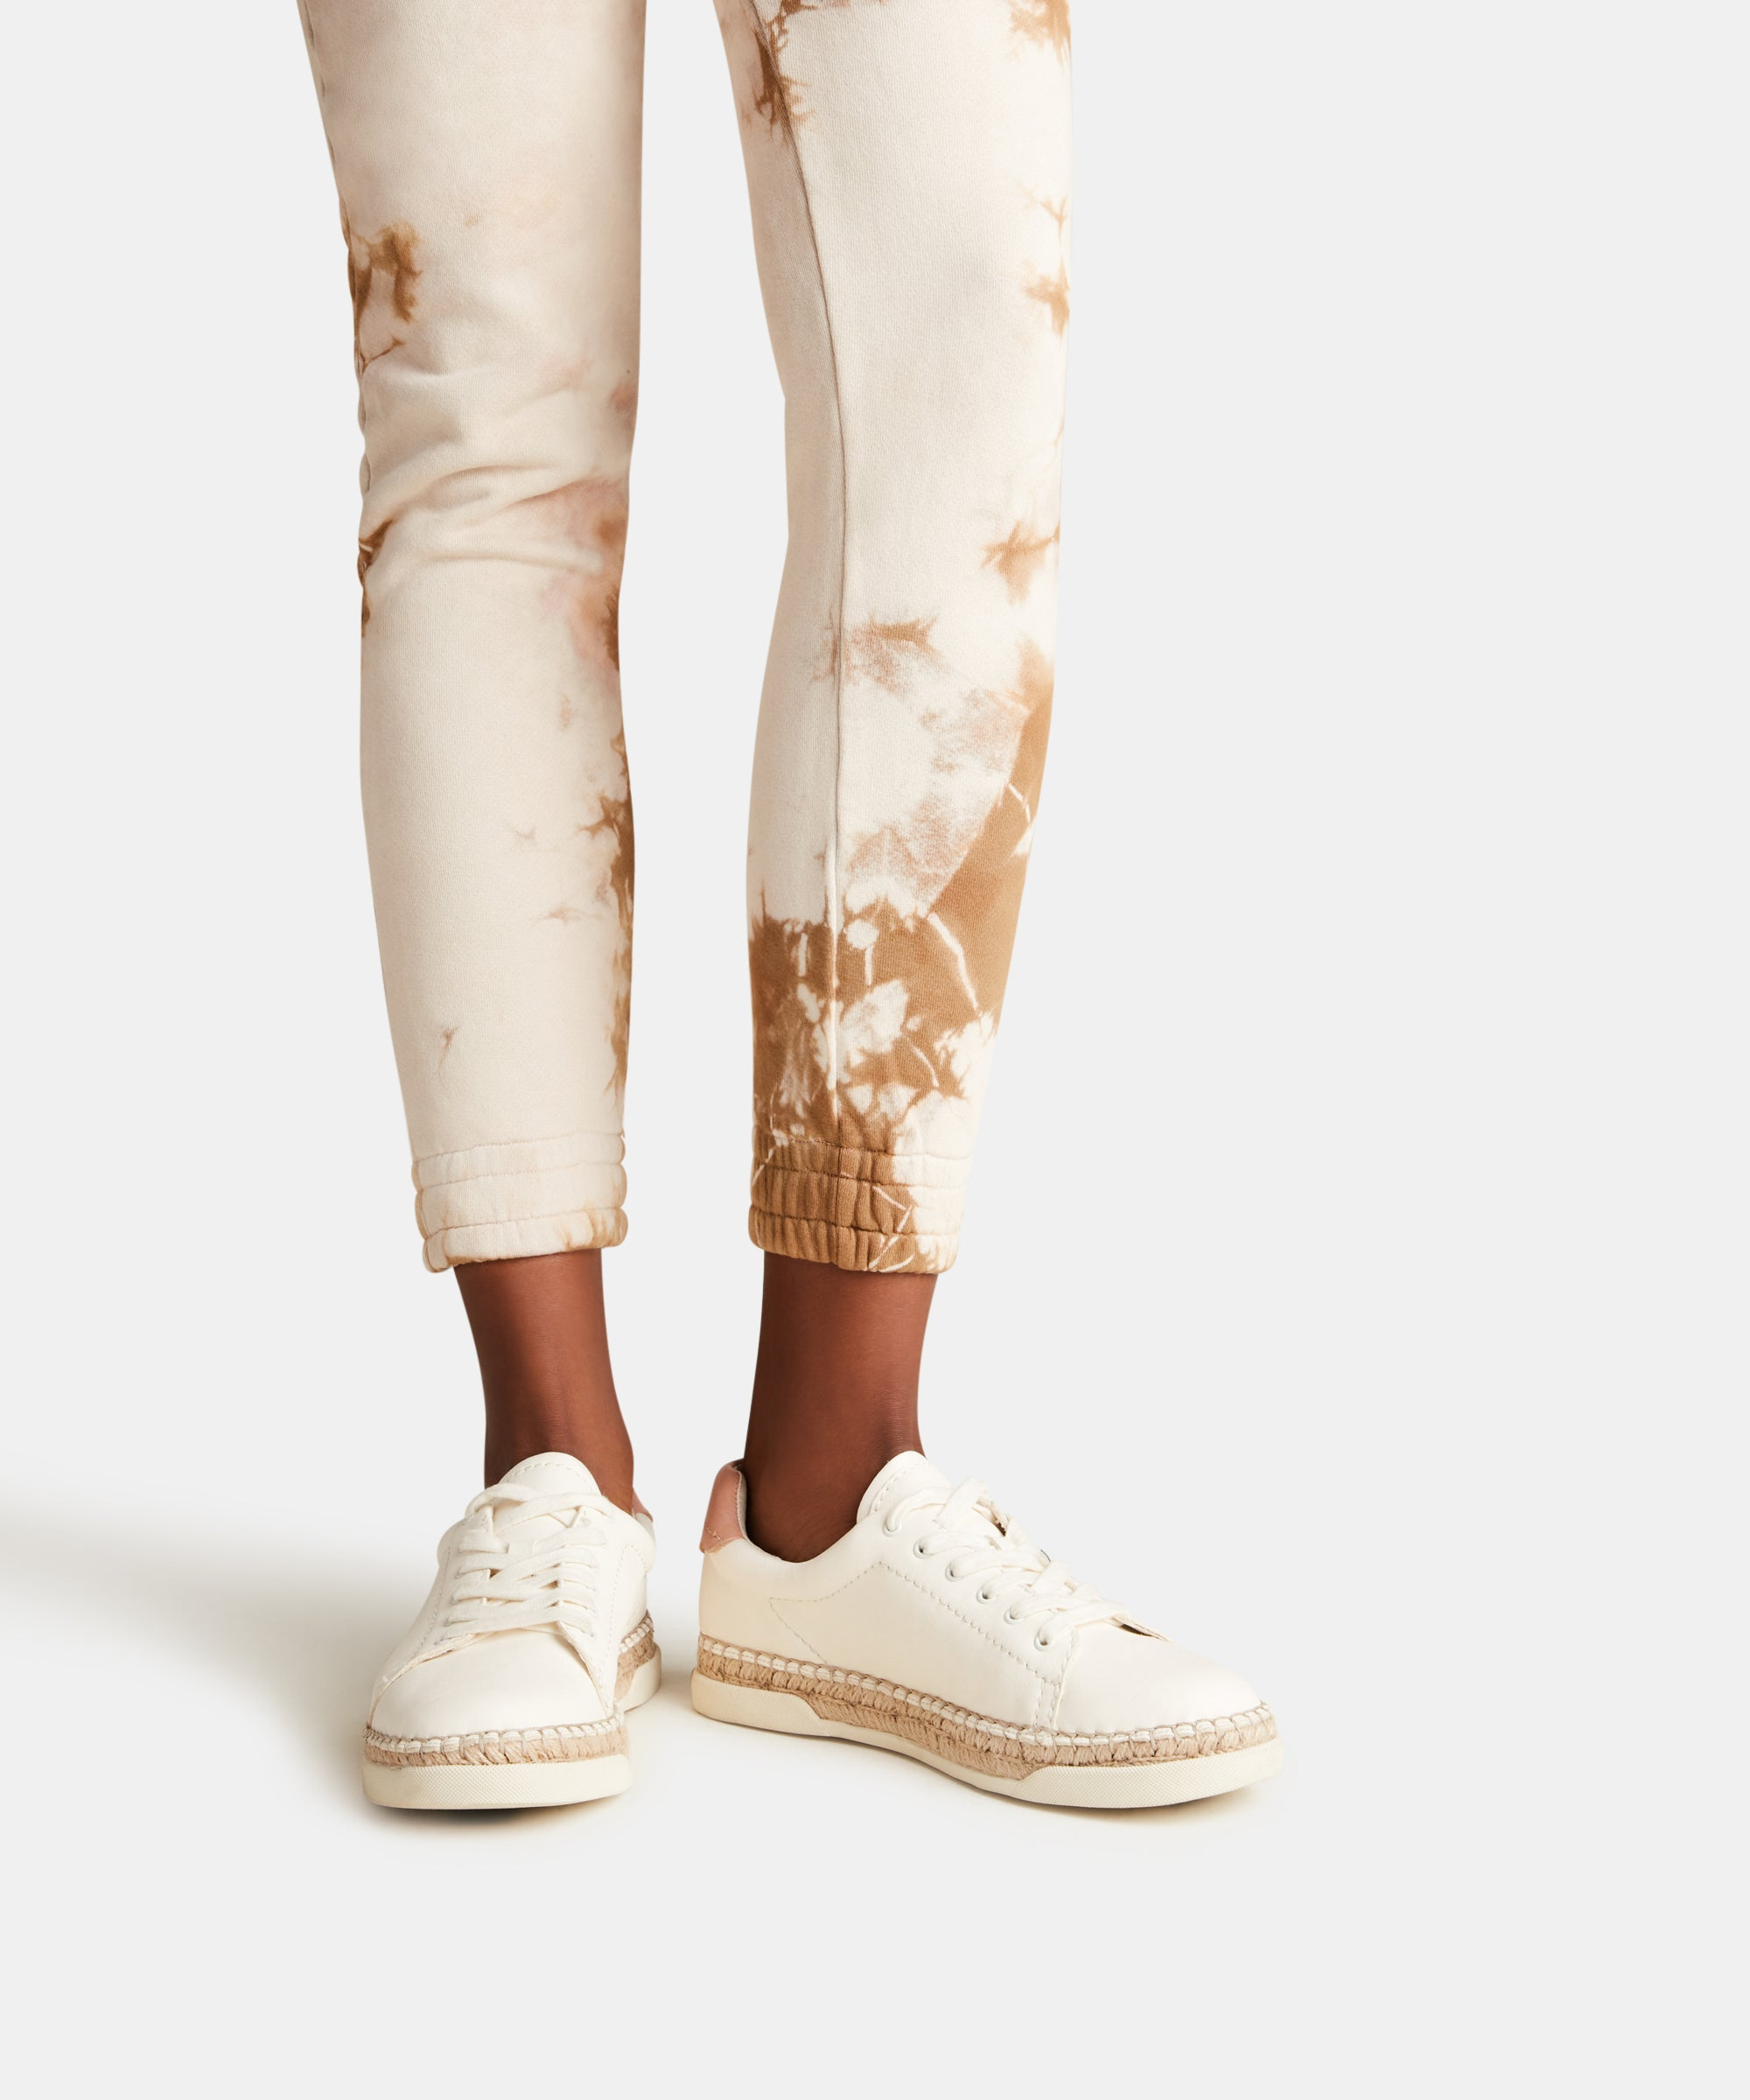 MADOX SNEAKERS IN WHITE – Dolce Vita